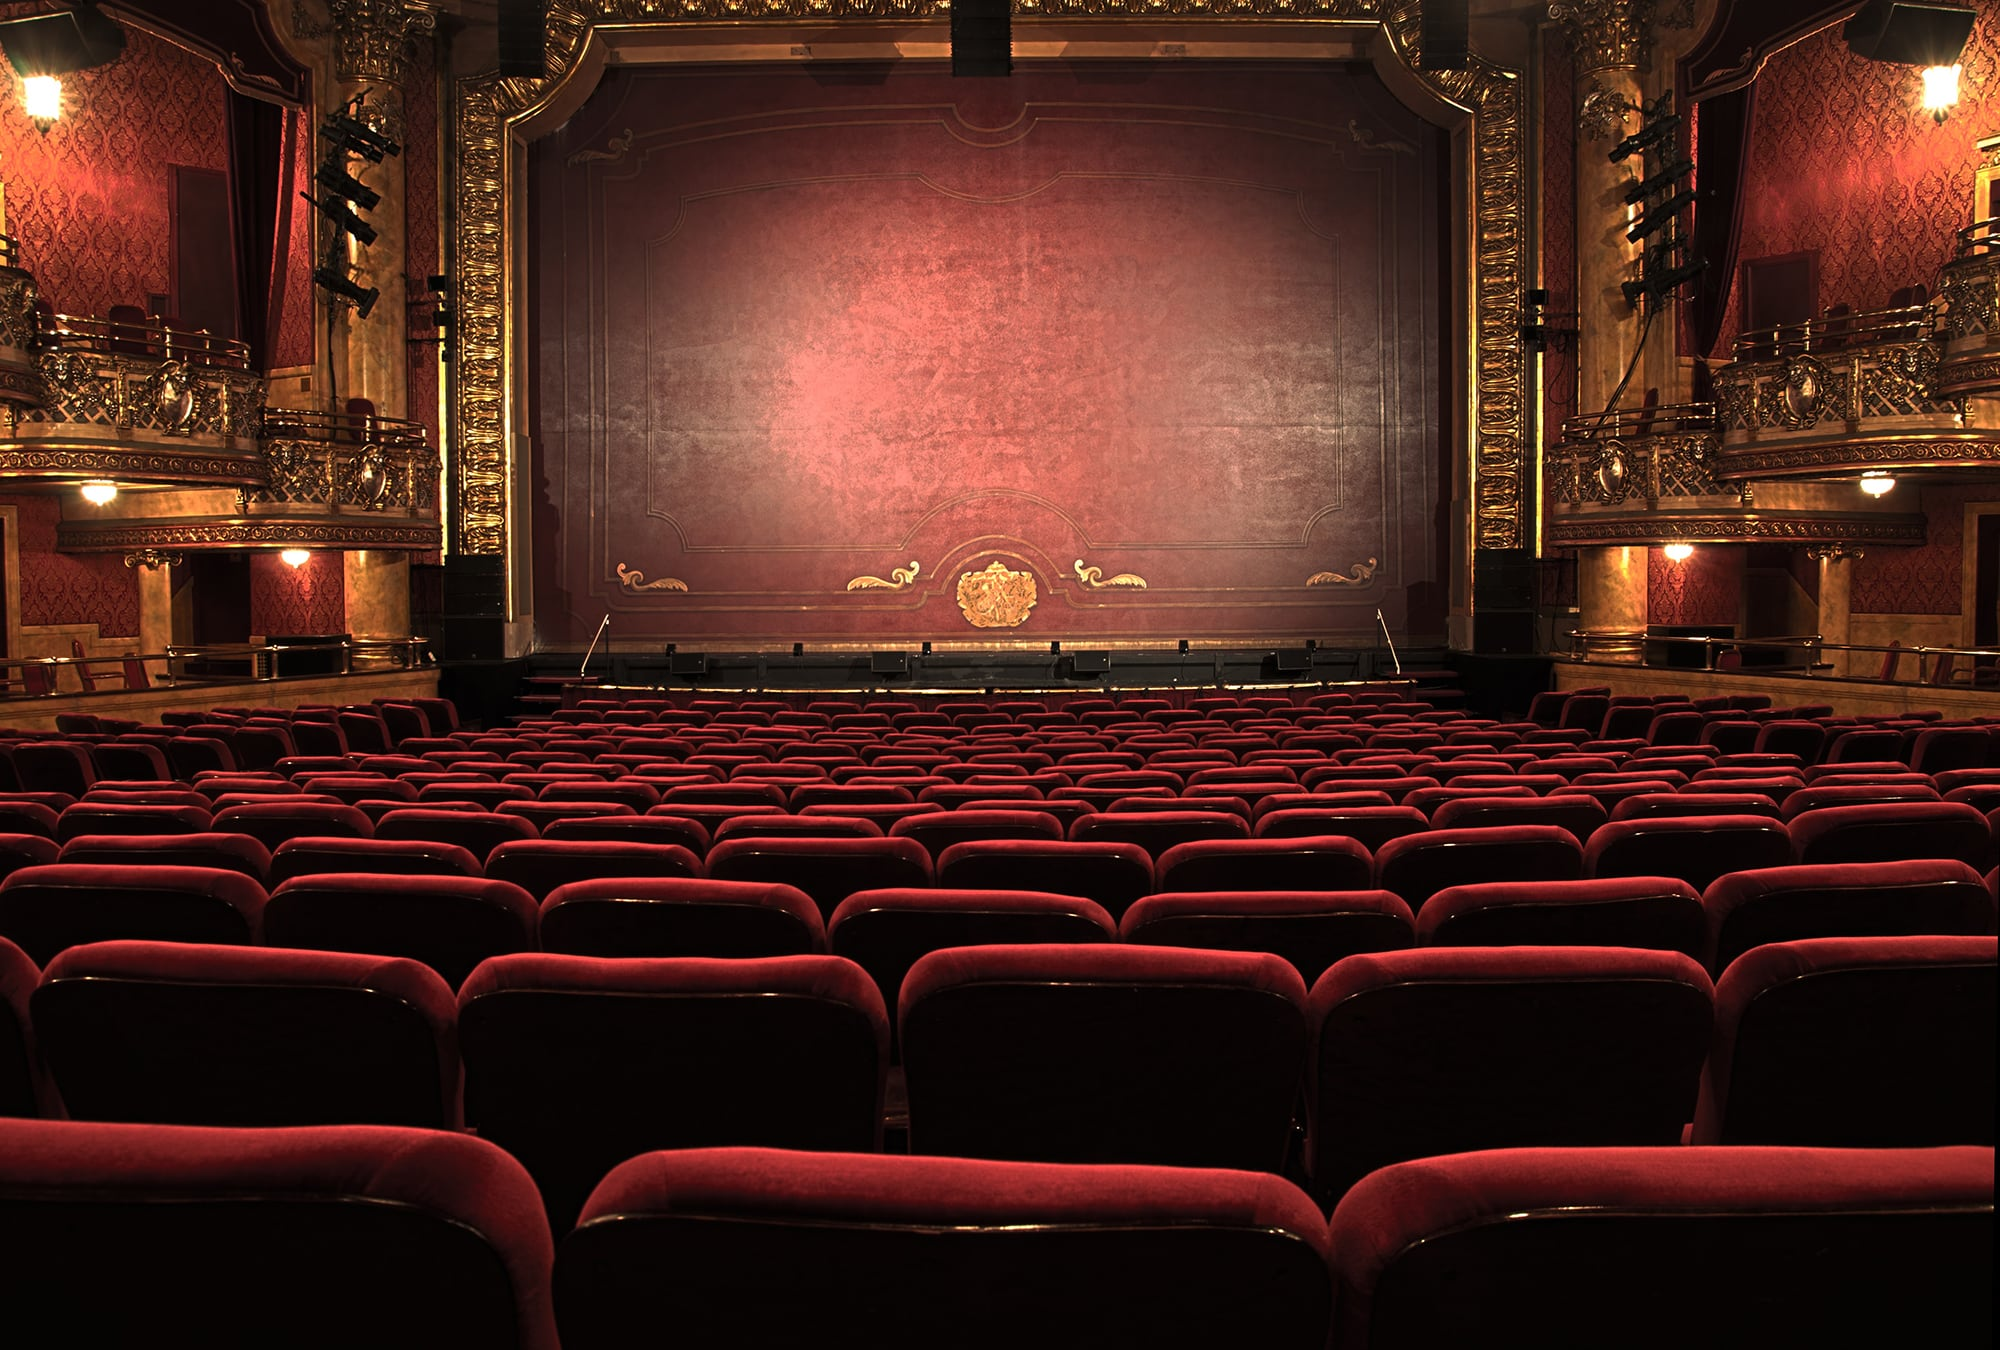 Stay at Dukes Bath and experience the amazing Theatre Royal